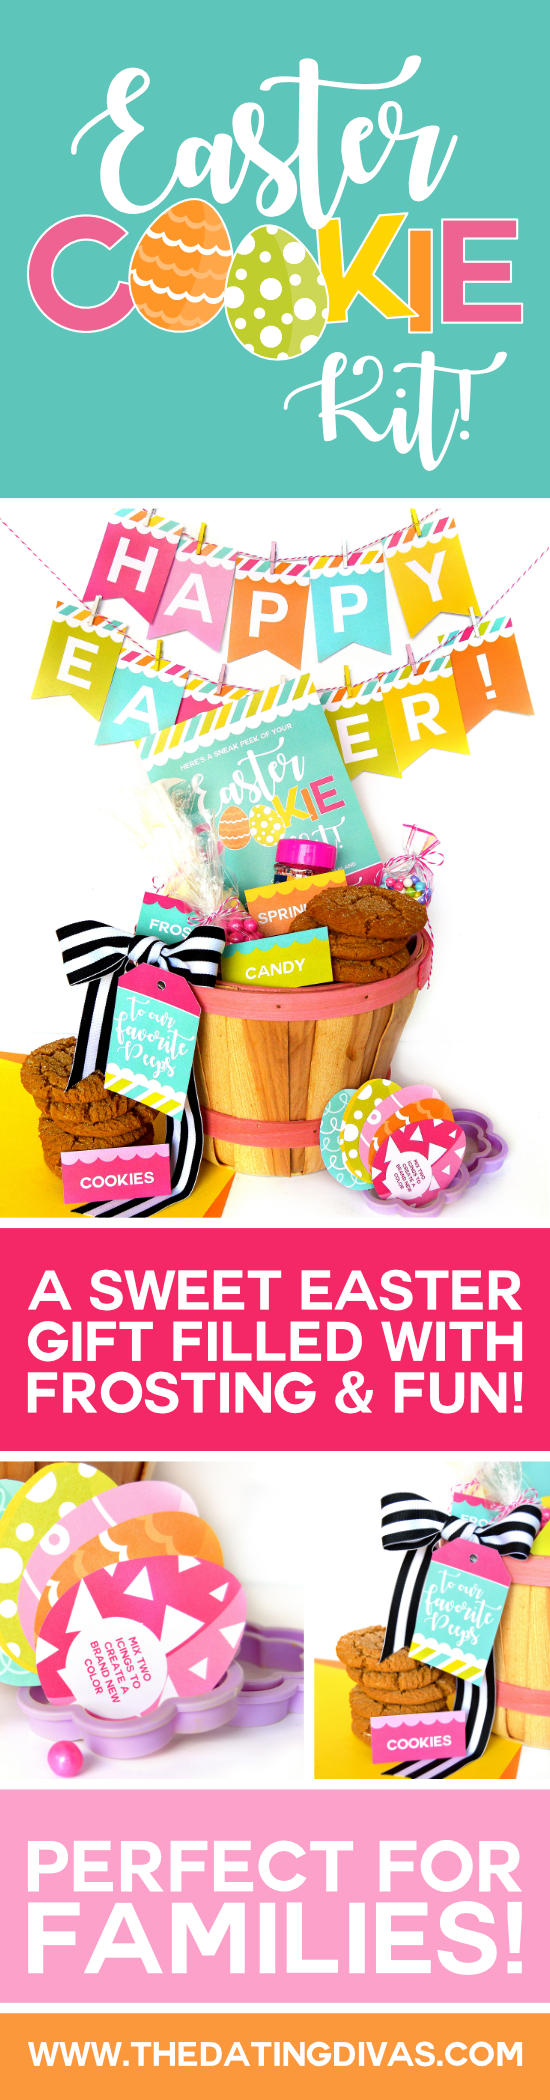 Diy easter basket family gift idea from easter gift baskets diy easter basket family gift idea from the dating divas negle Gallery